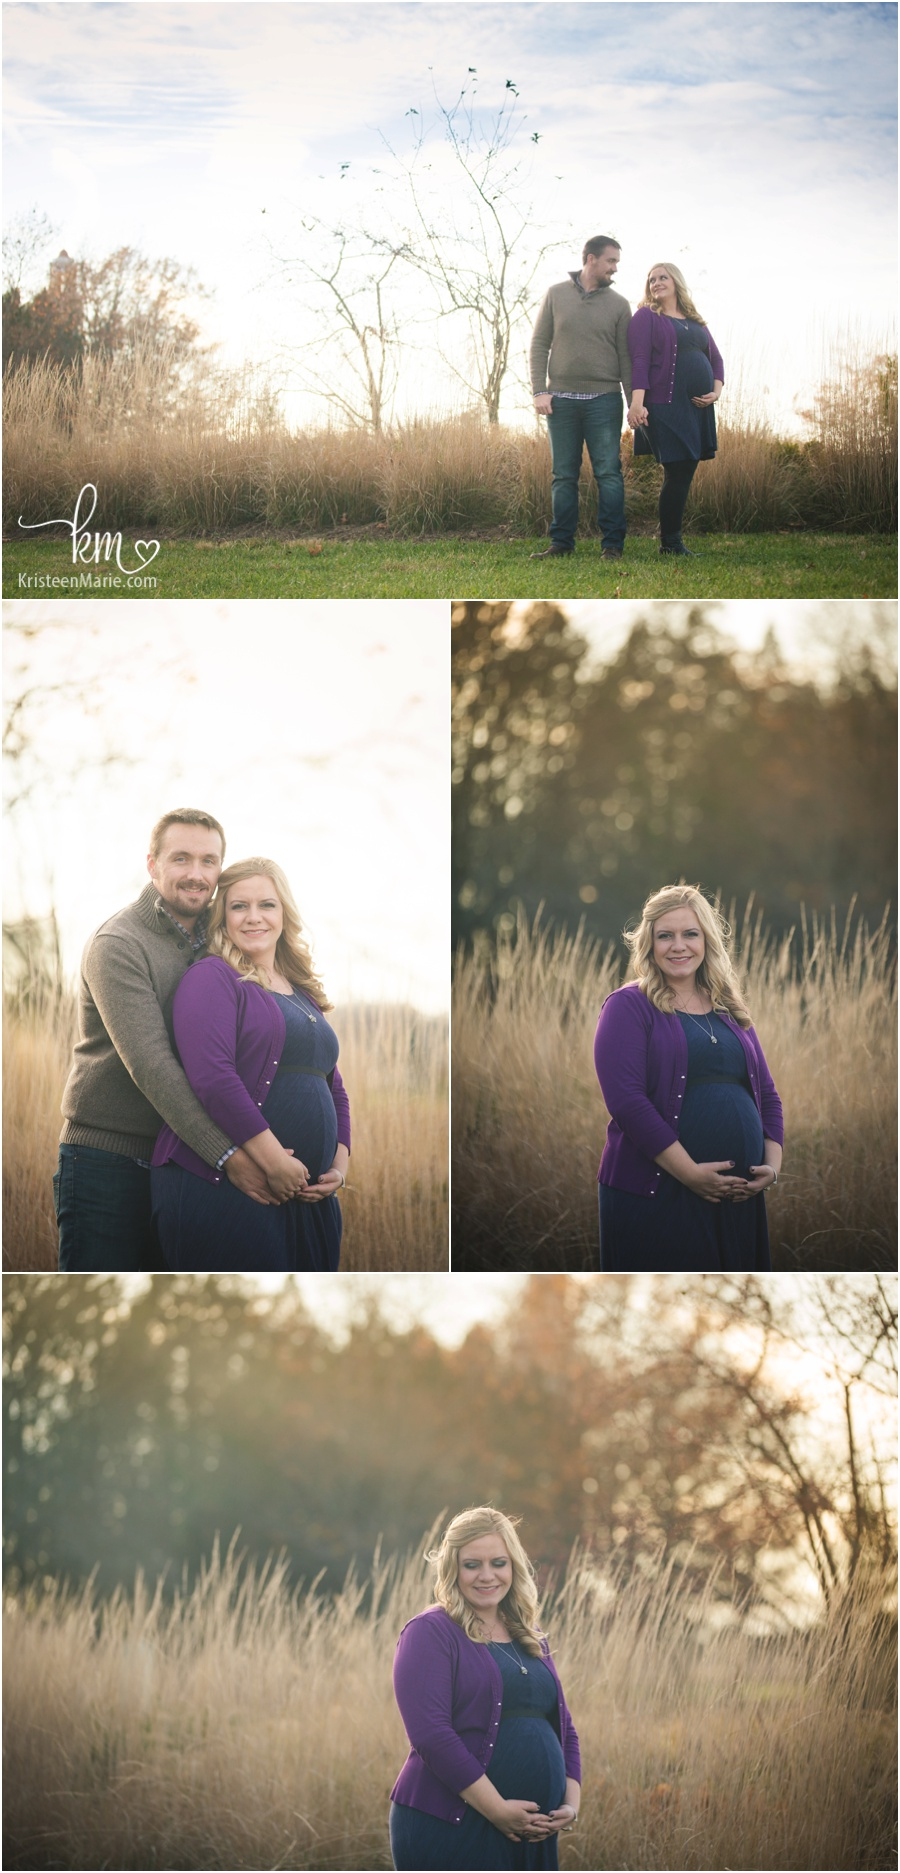 Fall maternity session in Carmel, IN by KristeenMarie Photography